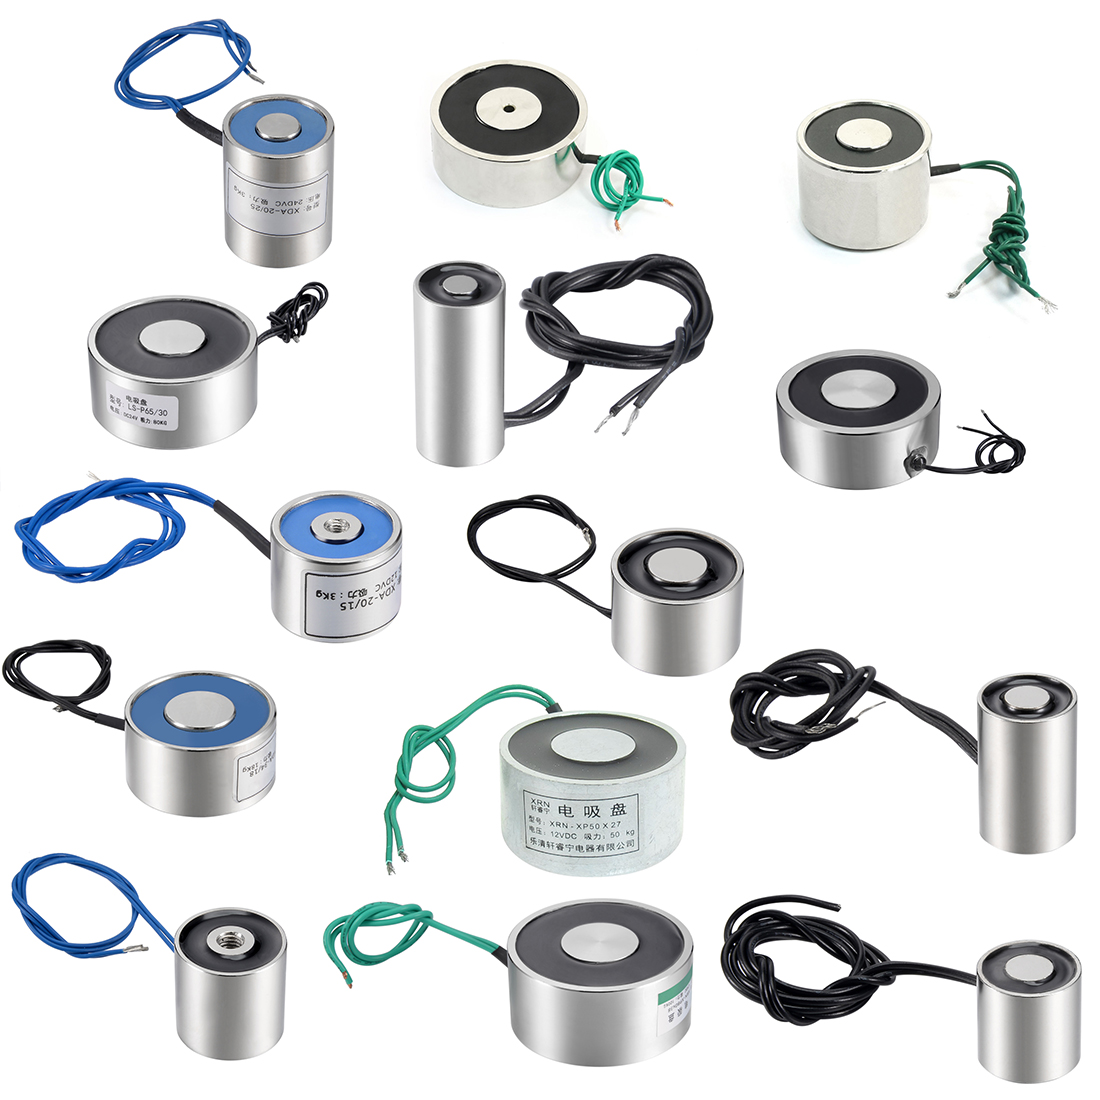 Uxcell 6W 180N Sucking Disc Solenoid Lift Holding Electromagnet